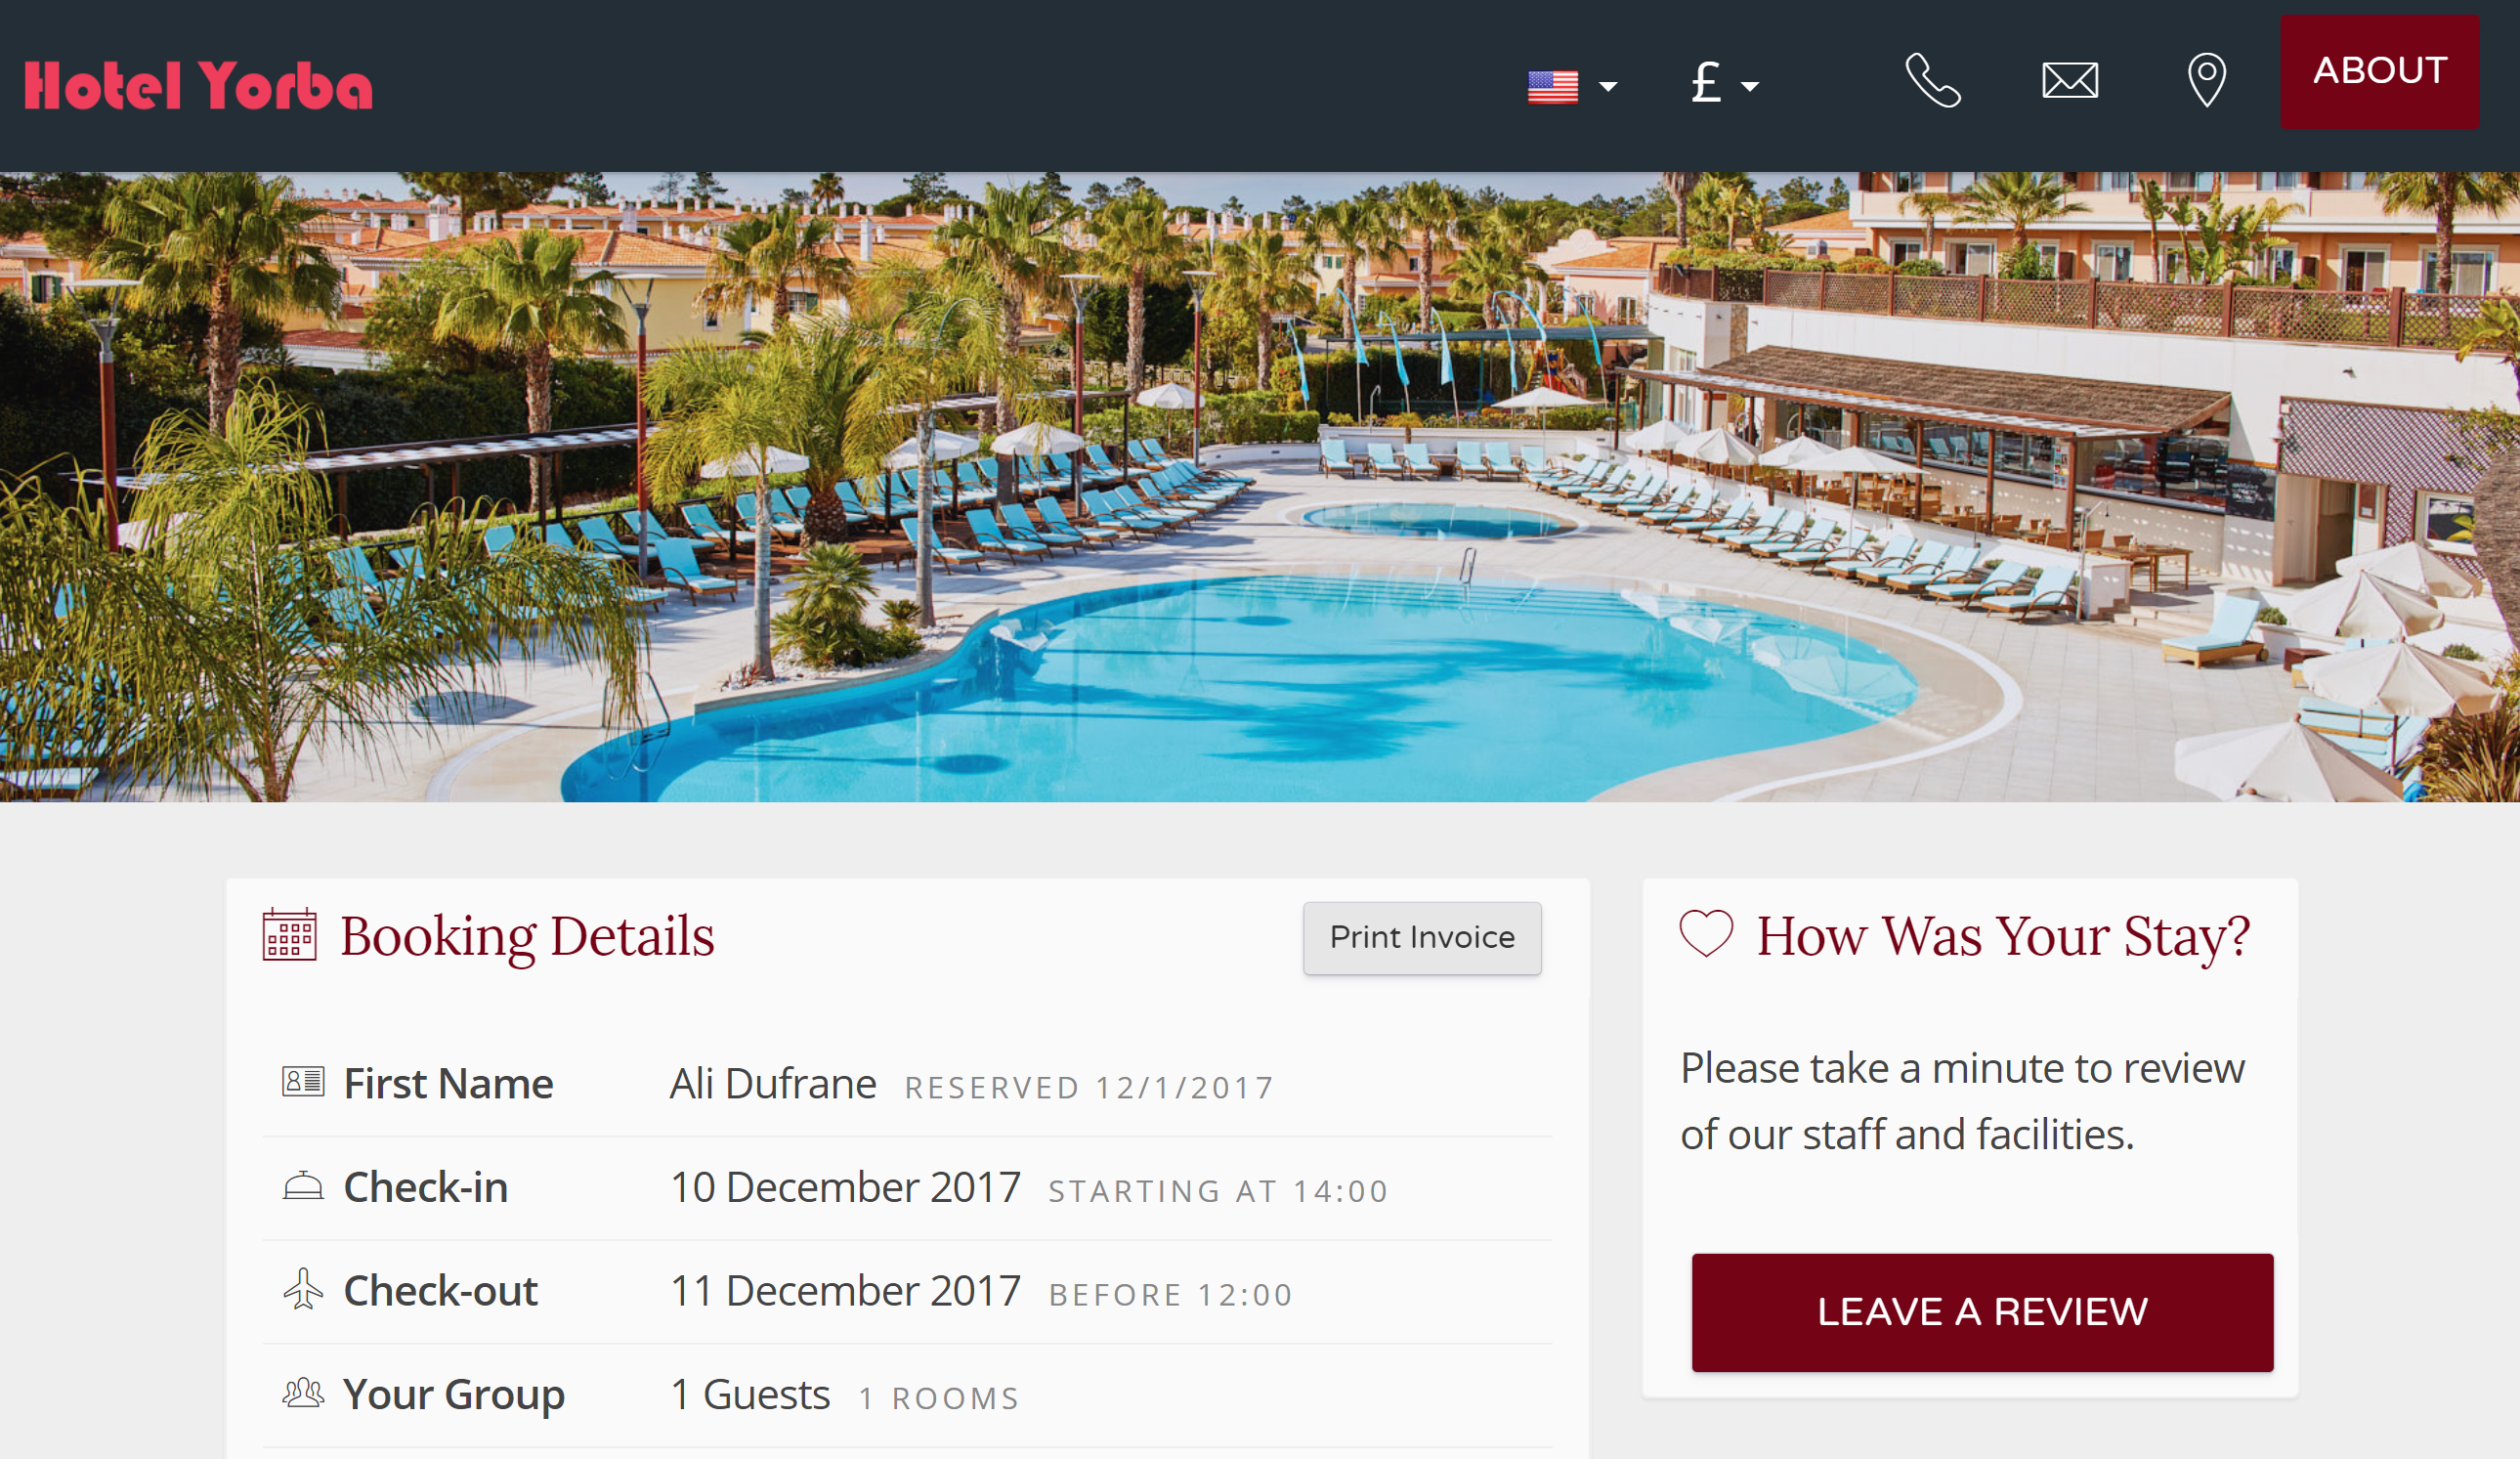 The invoice is also available to the guest after they have checked out. The guest will receive an email directing them to the guest portal section of your booking engine. From there, they can leave a review if you have enabled your review engine, or just print their invoice.